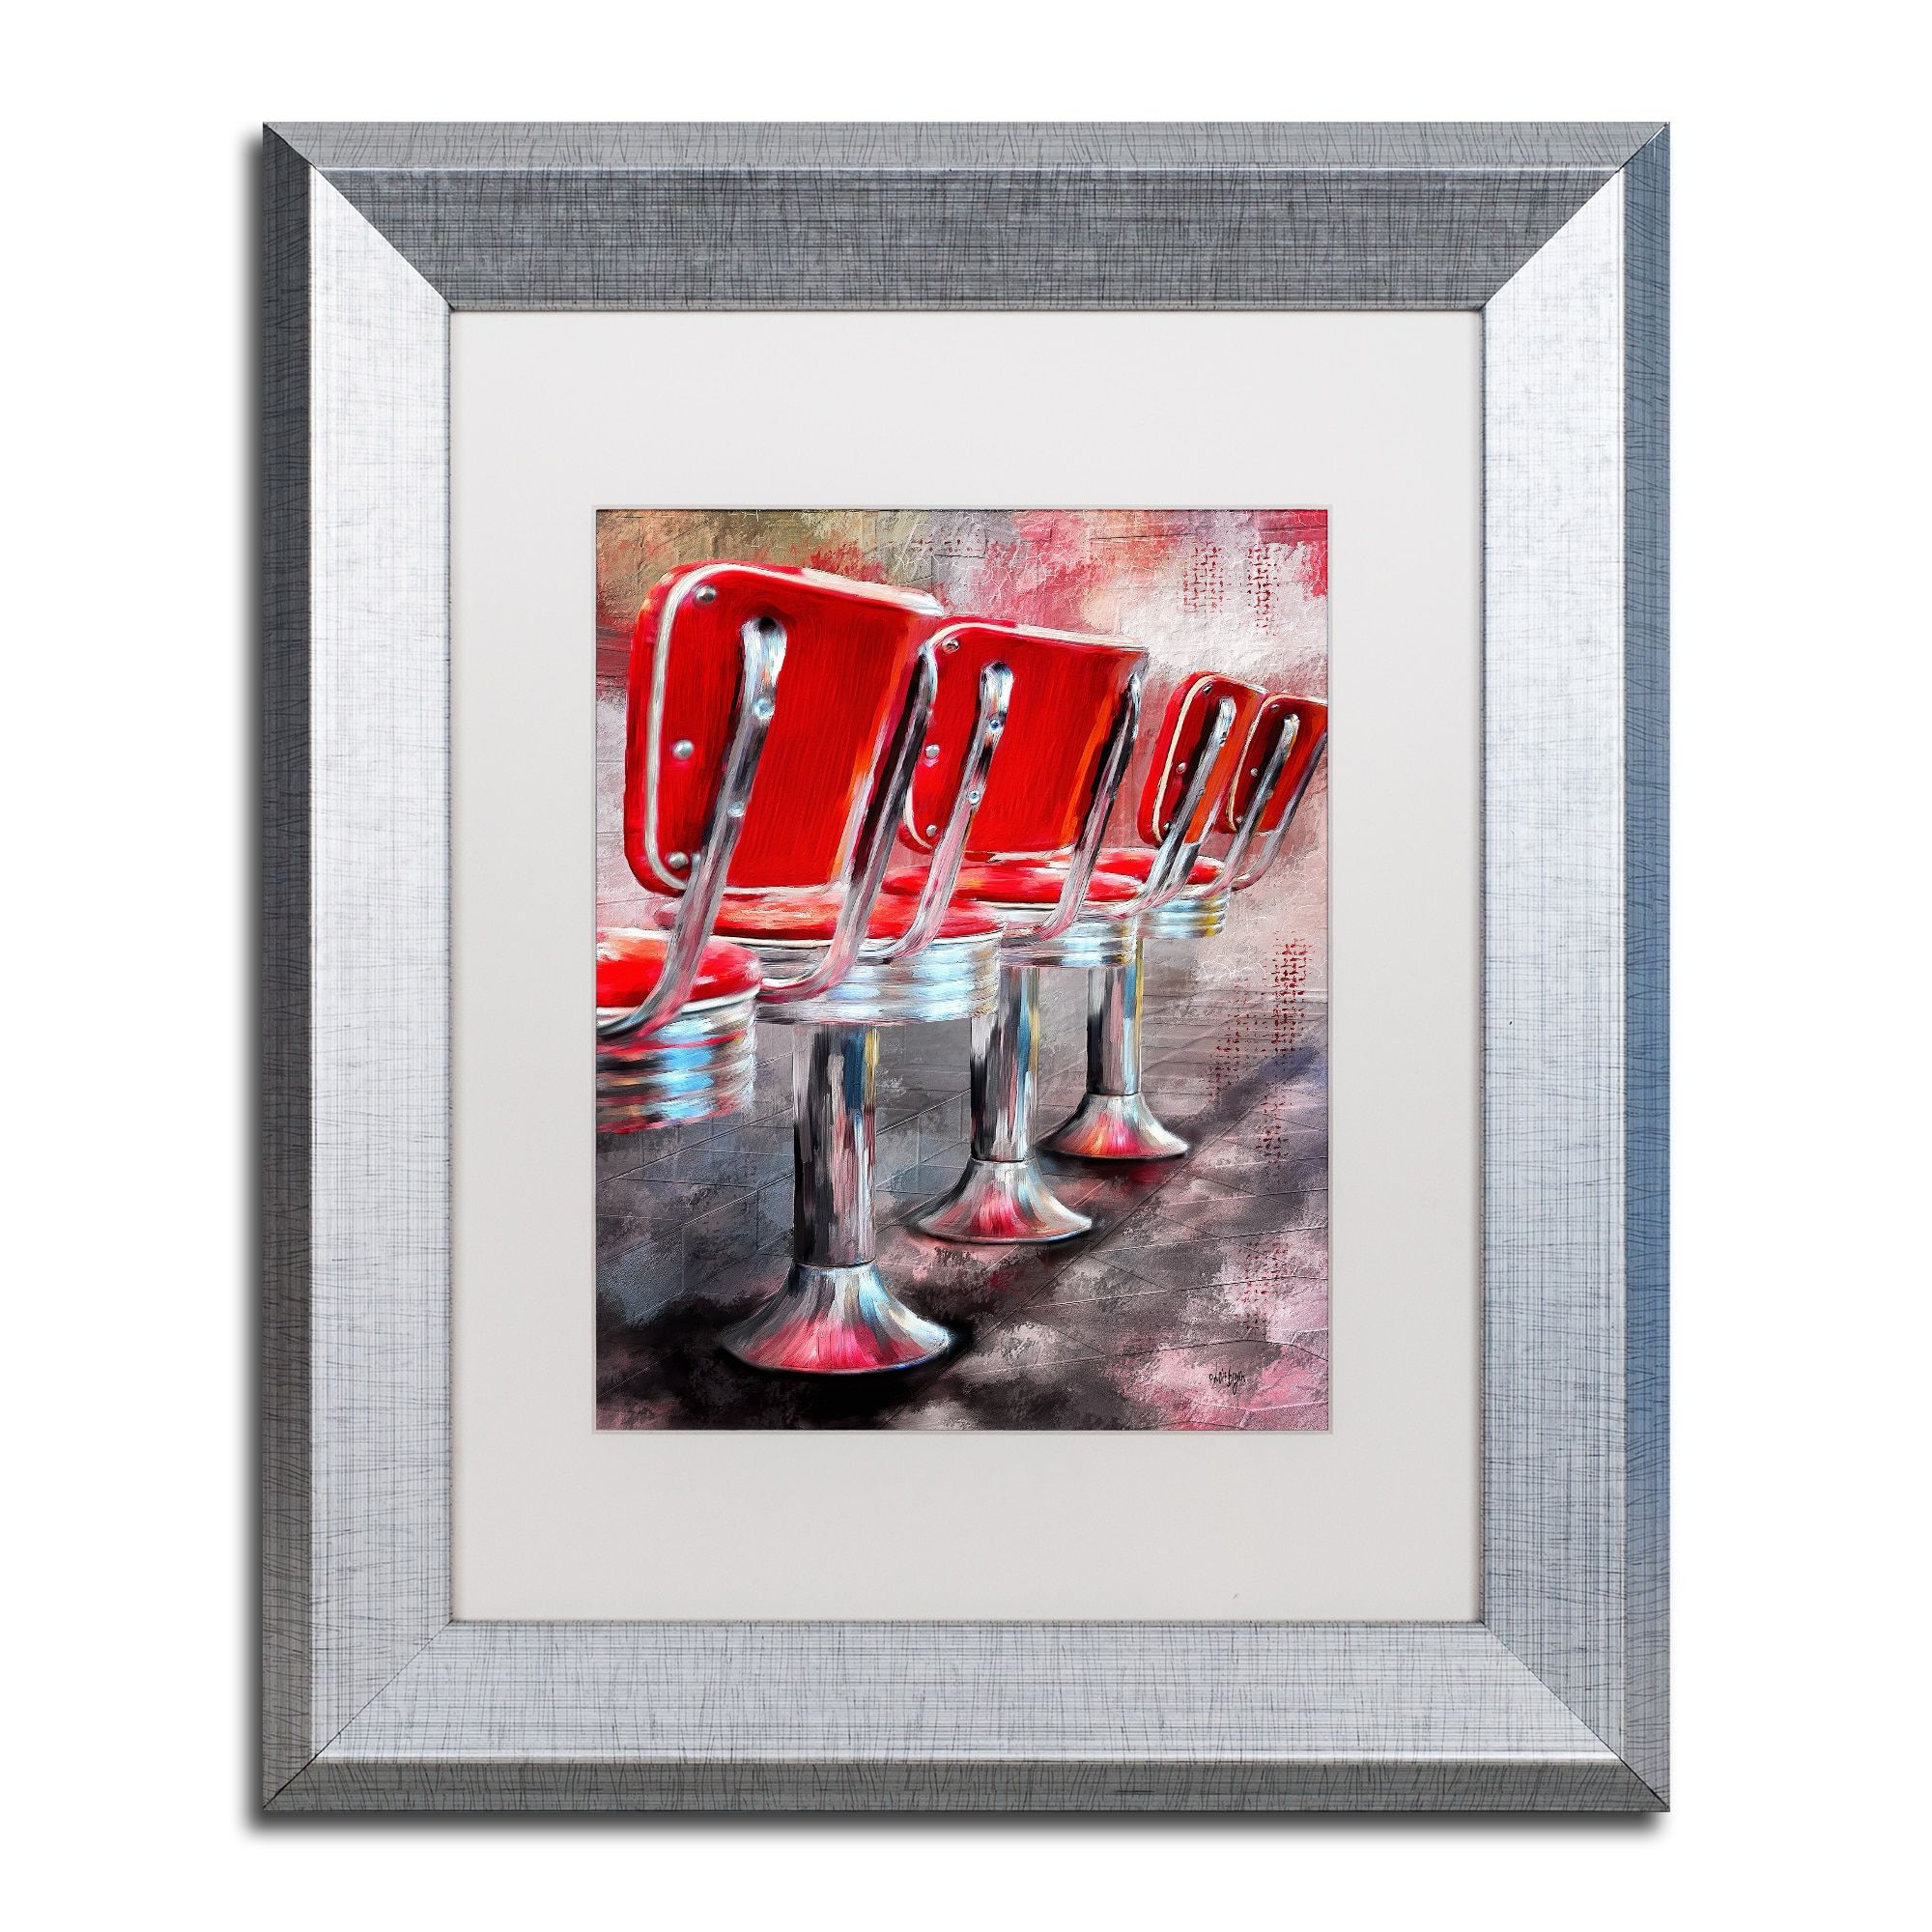 Lois bryan ucounter seating availableu matted framed art products